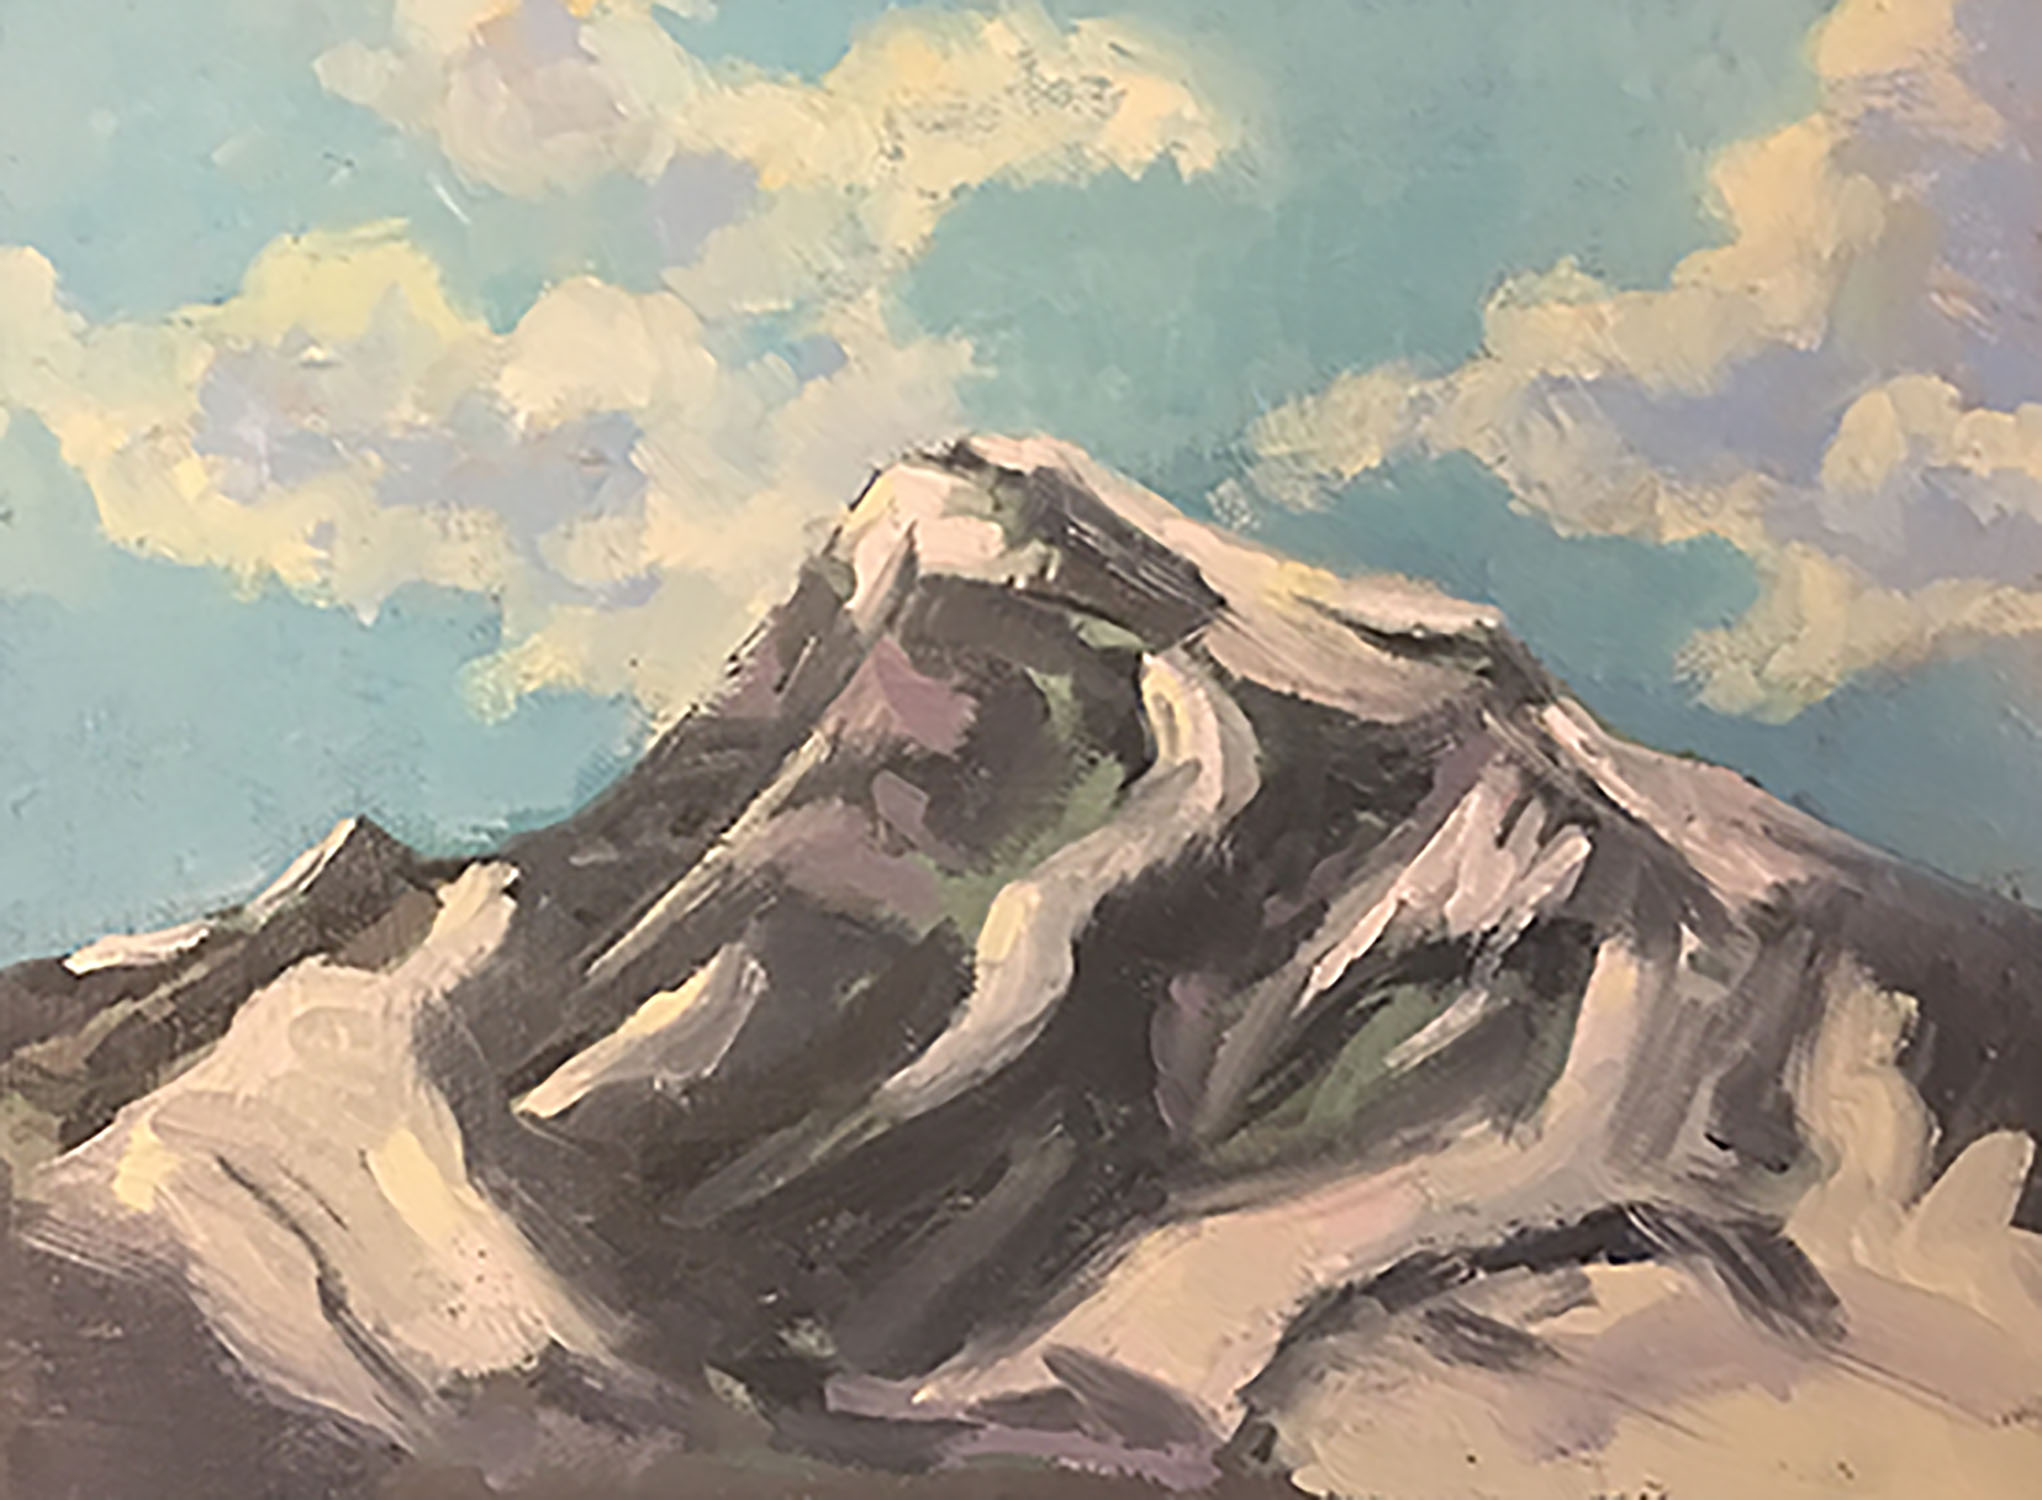 Heaven's Peak - 6x8 - Oil. We found a spot to stop in the park with this view. It was a little challenging since we didn't have much shade and the bugs were biting so I painted small and fast.